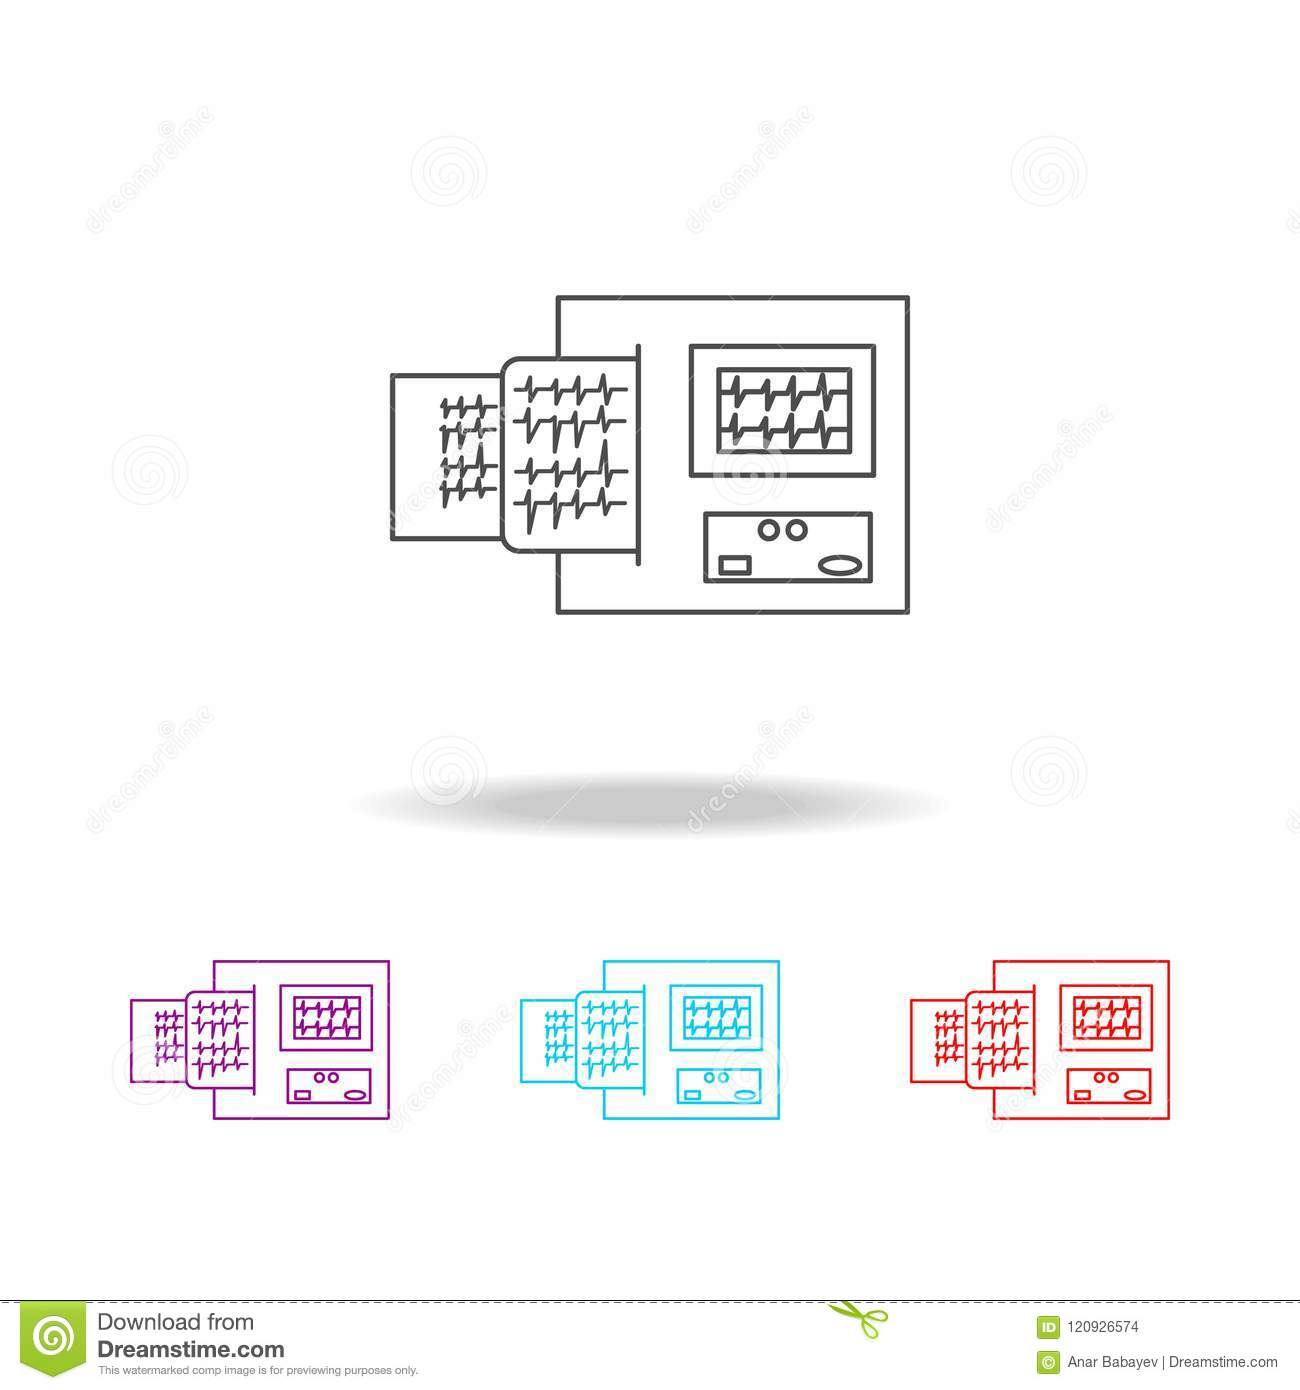 hight resolution of electrocardiogram device and heart pulse on list line icon elements of medical tools in multi colored icons premium quality graphic design icon